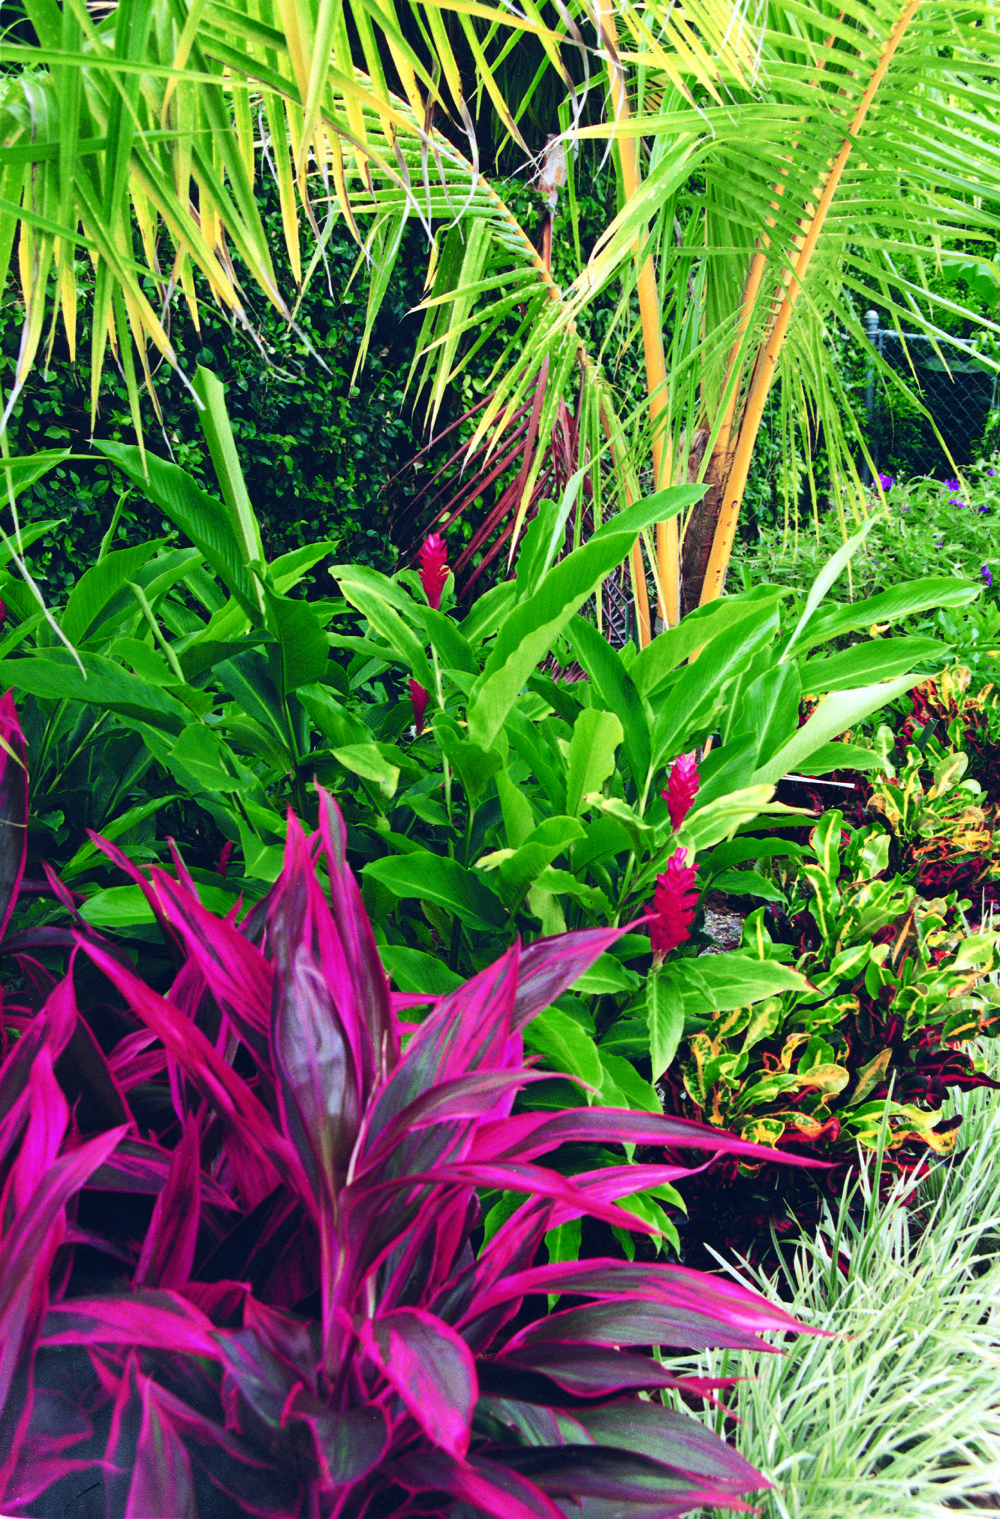 4b45dd9265d4e54265e758713c0b7be4 - Gardening In South Florida What To Plant